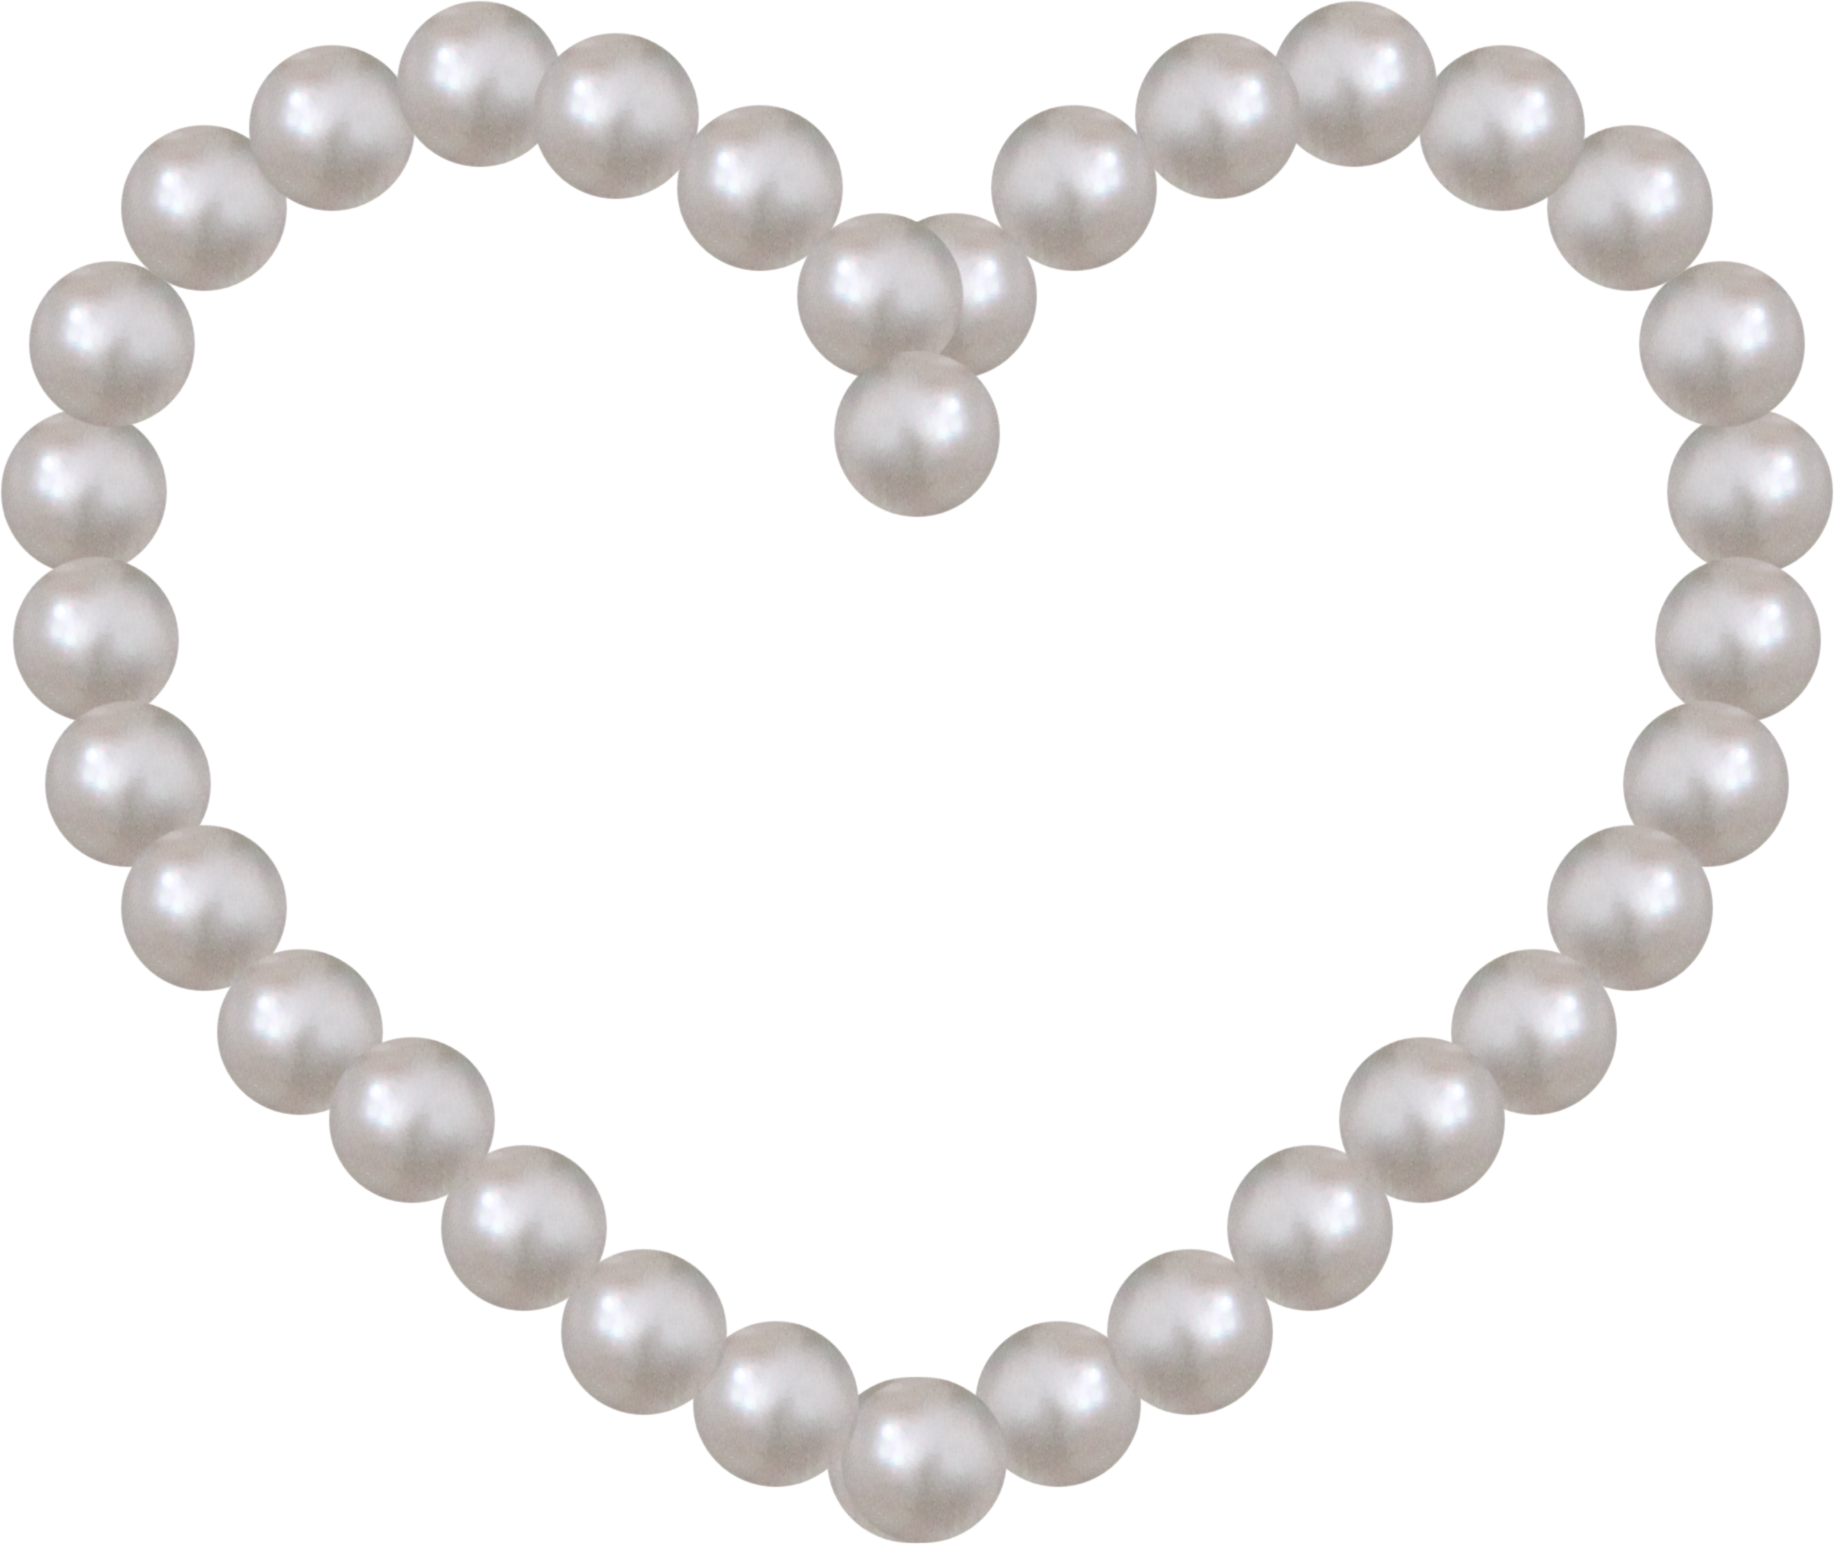 Beads PNG Image File.